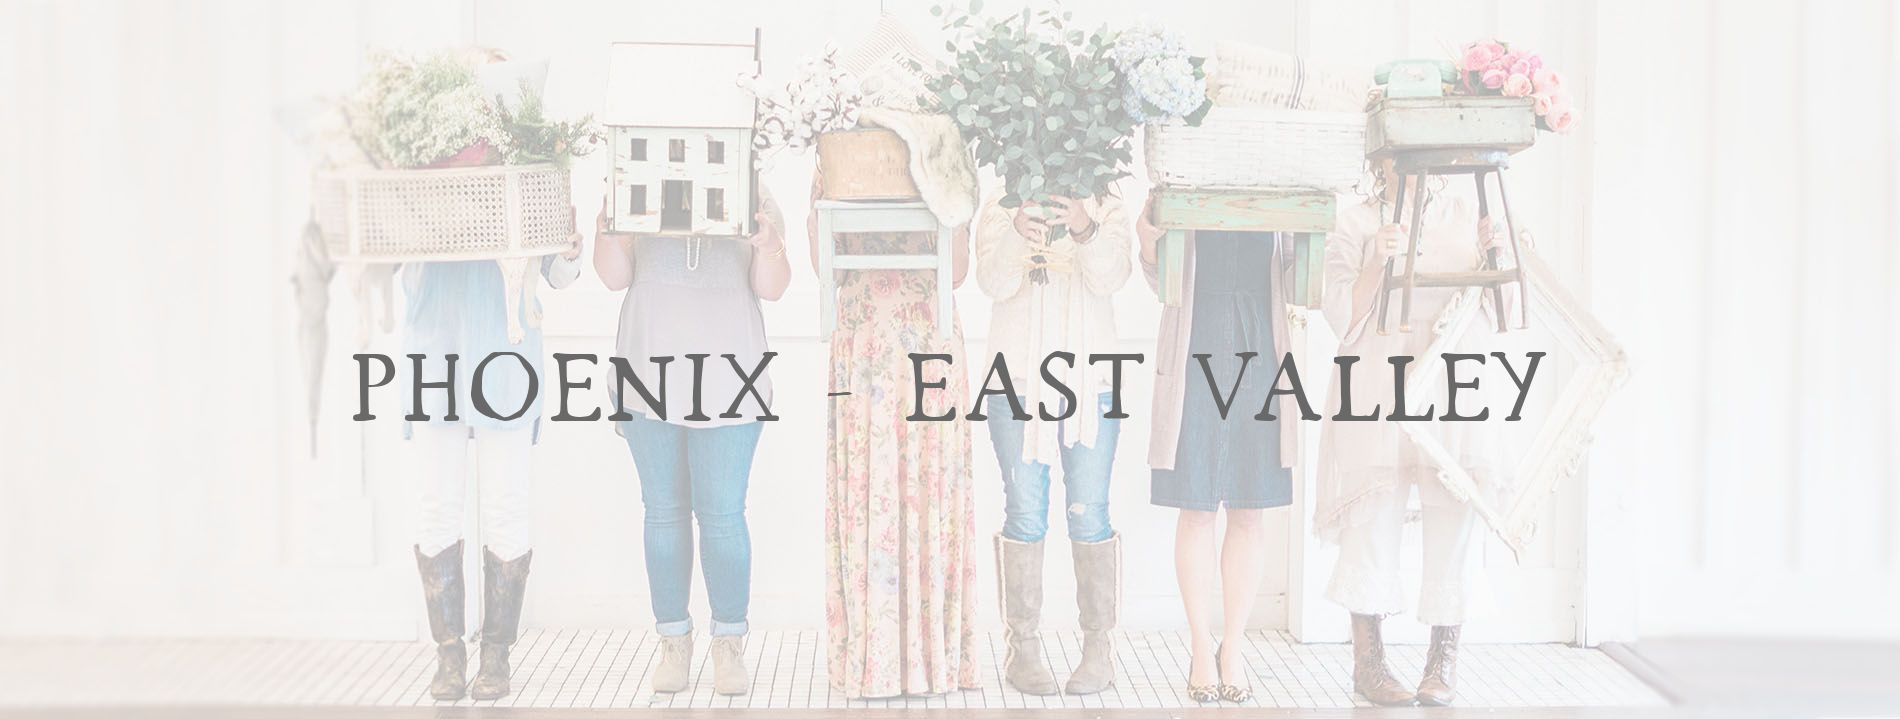 Phoenix - East Valley